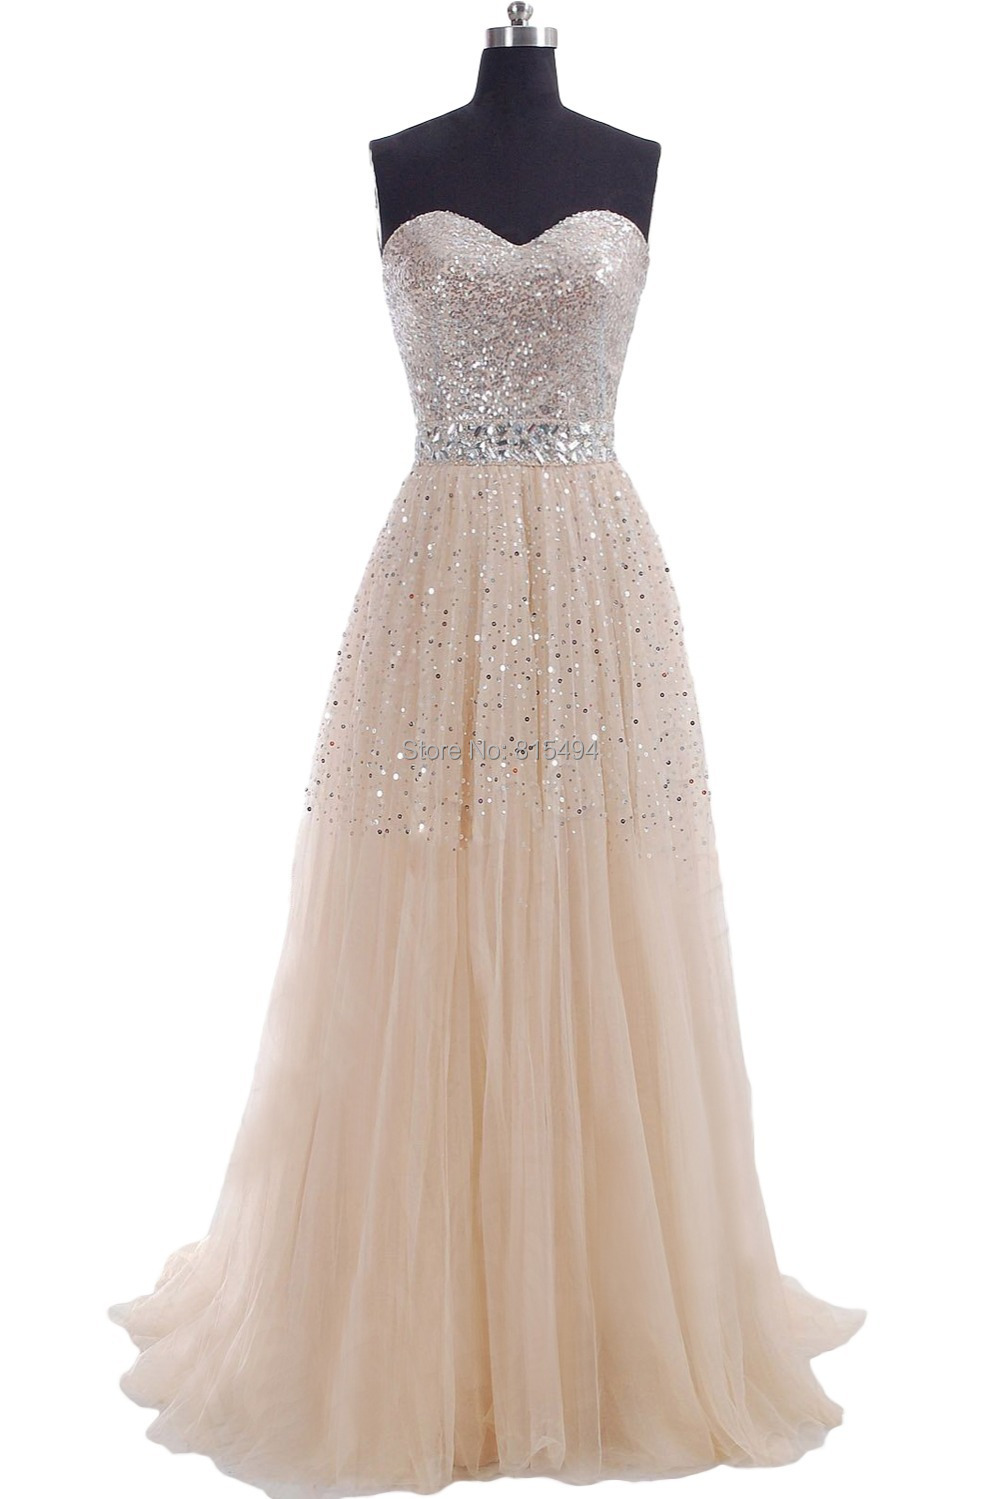 2015 sweetheart a line champagne formal prom dress long for Formal dress for women wedding